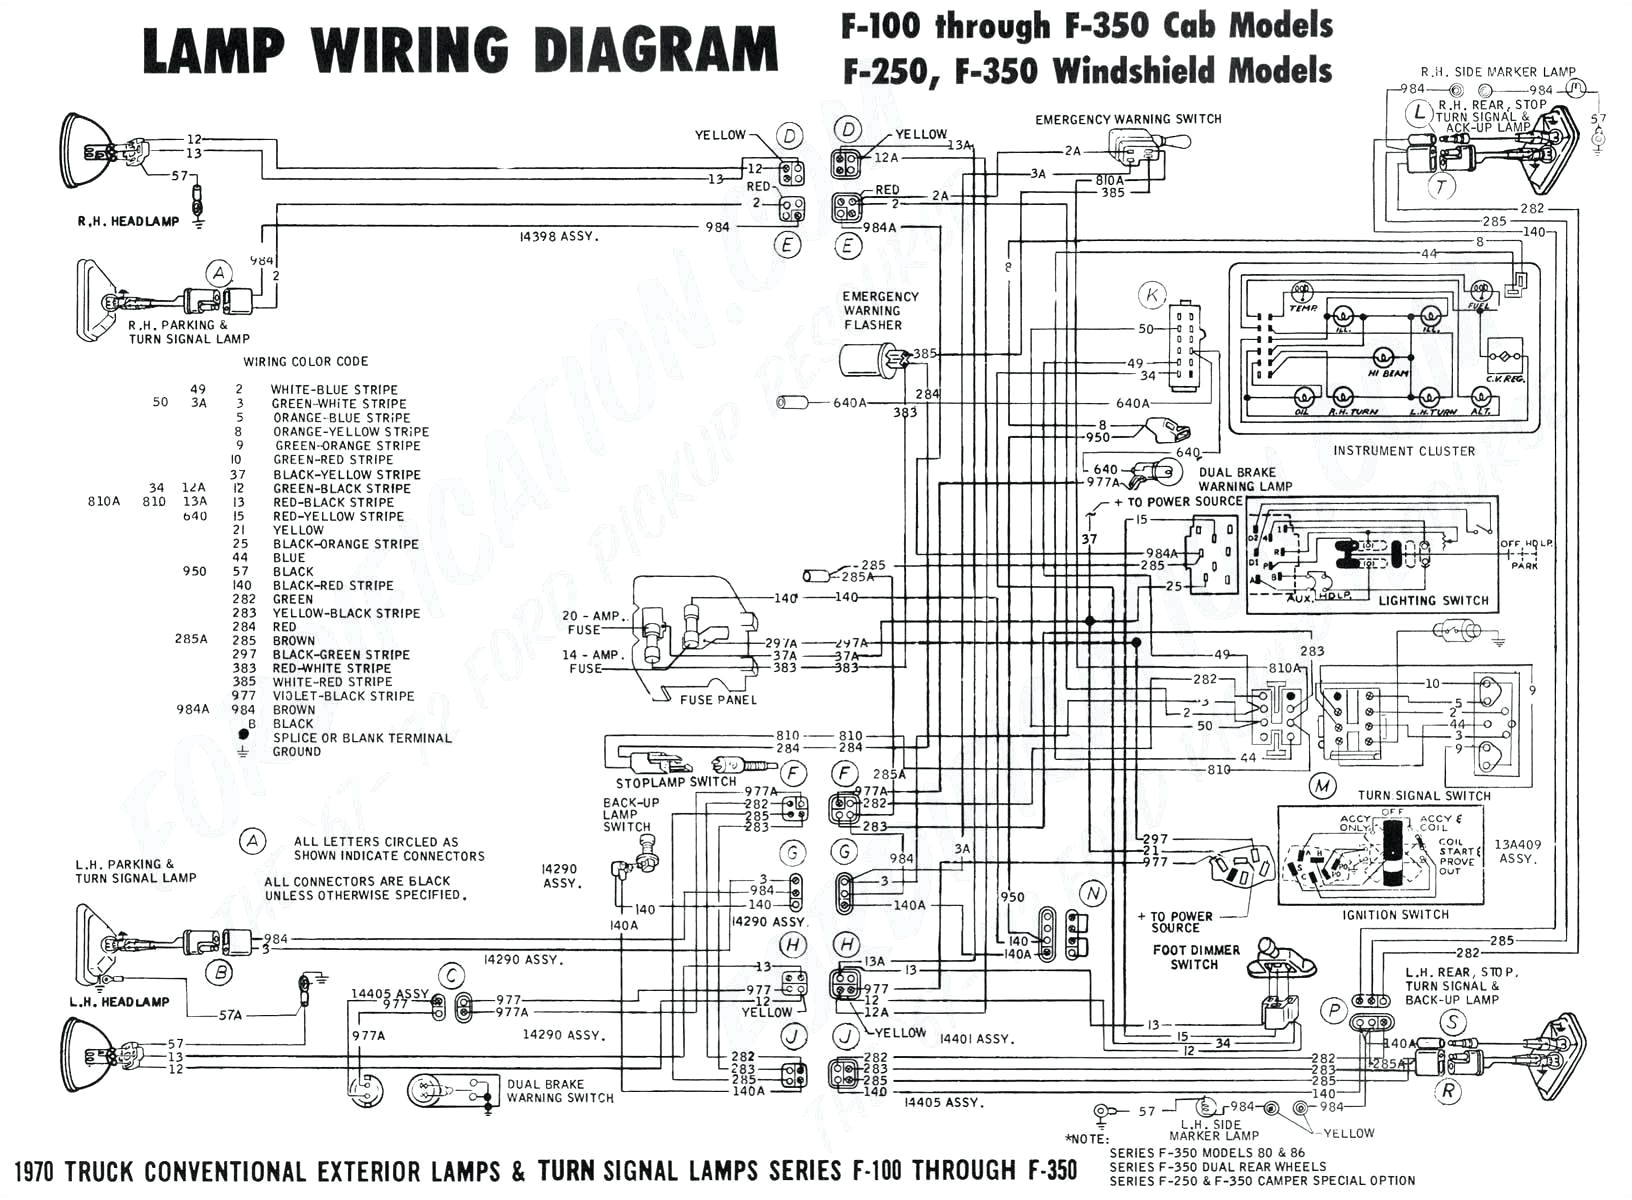 2004 ford f250 wiring diagram wiring diagram sheet 2004 ford f 250 trailer wiring harness diagram